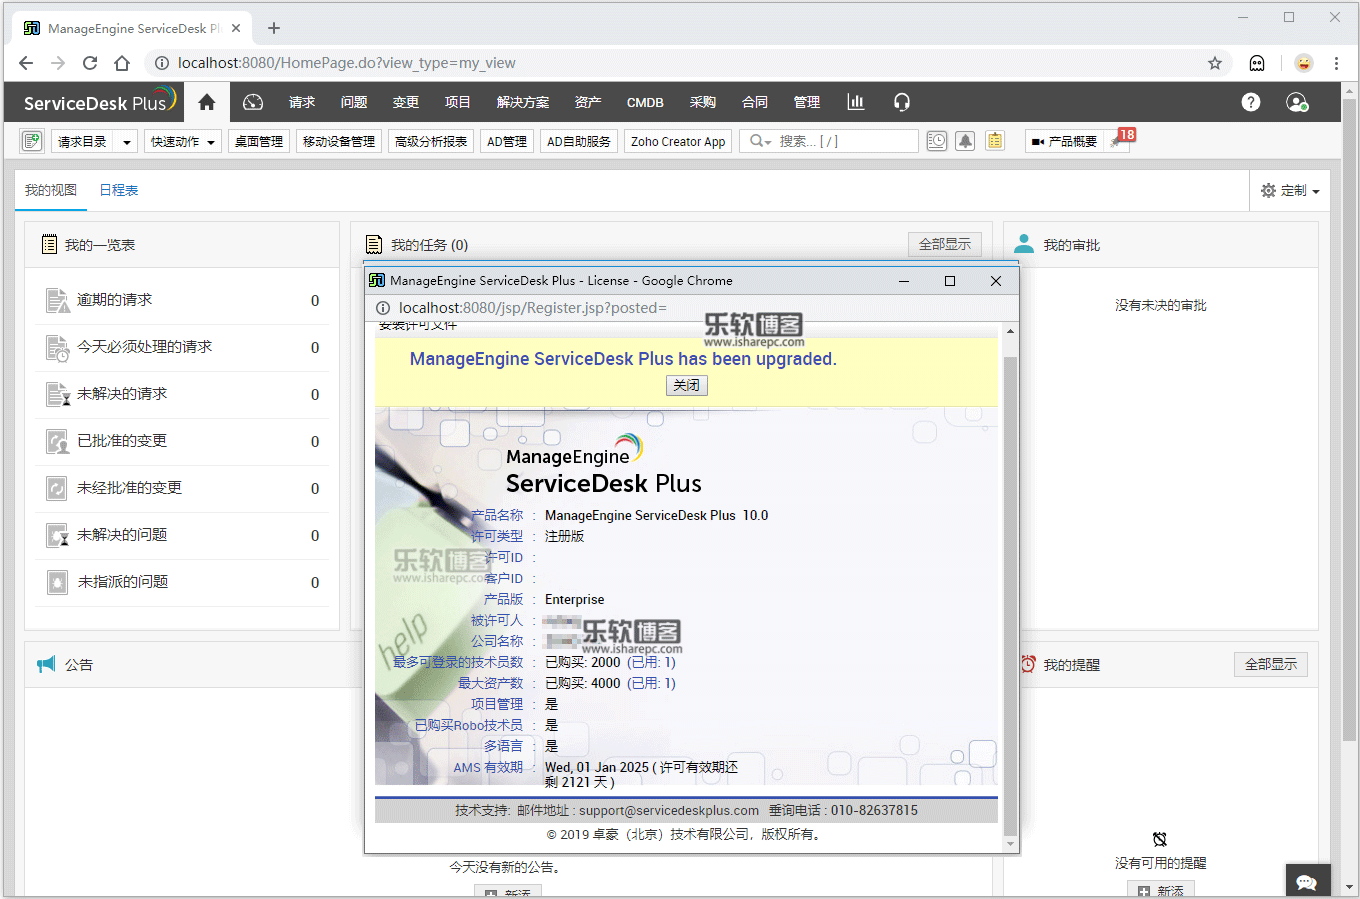 ManageEngine ServiceDesk Plus 10.0许可证